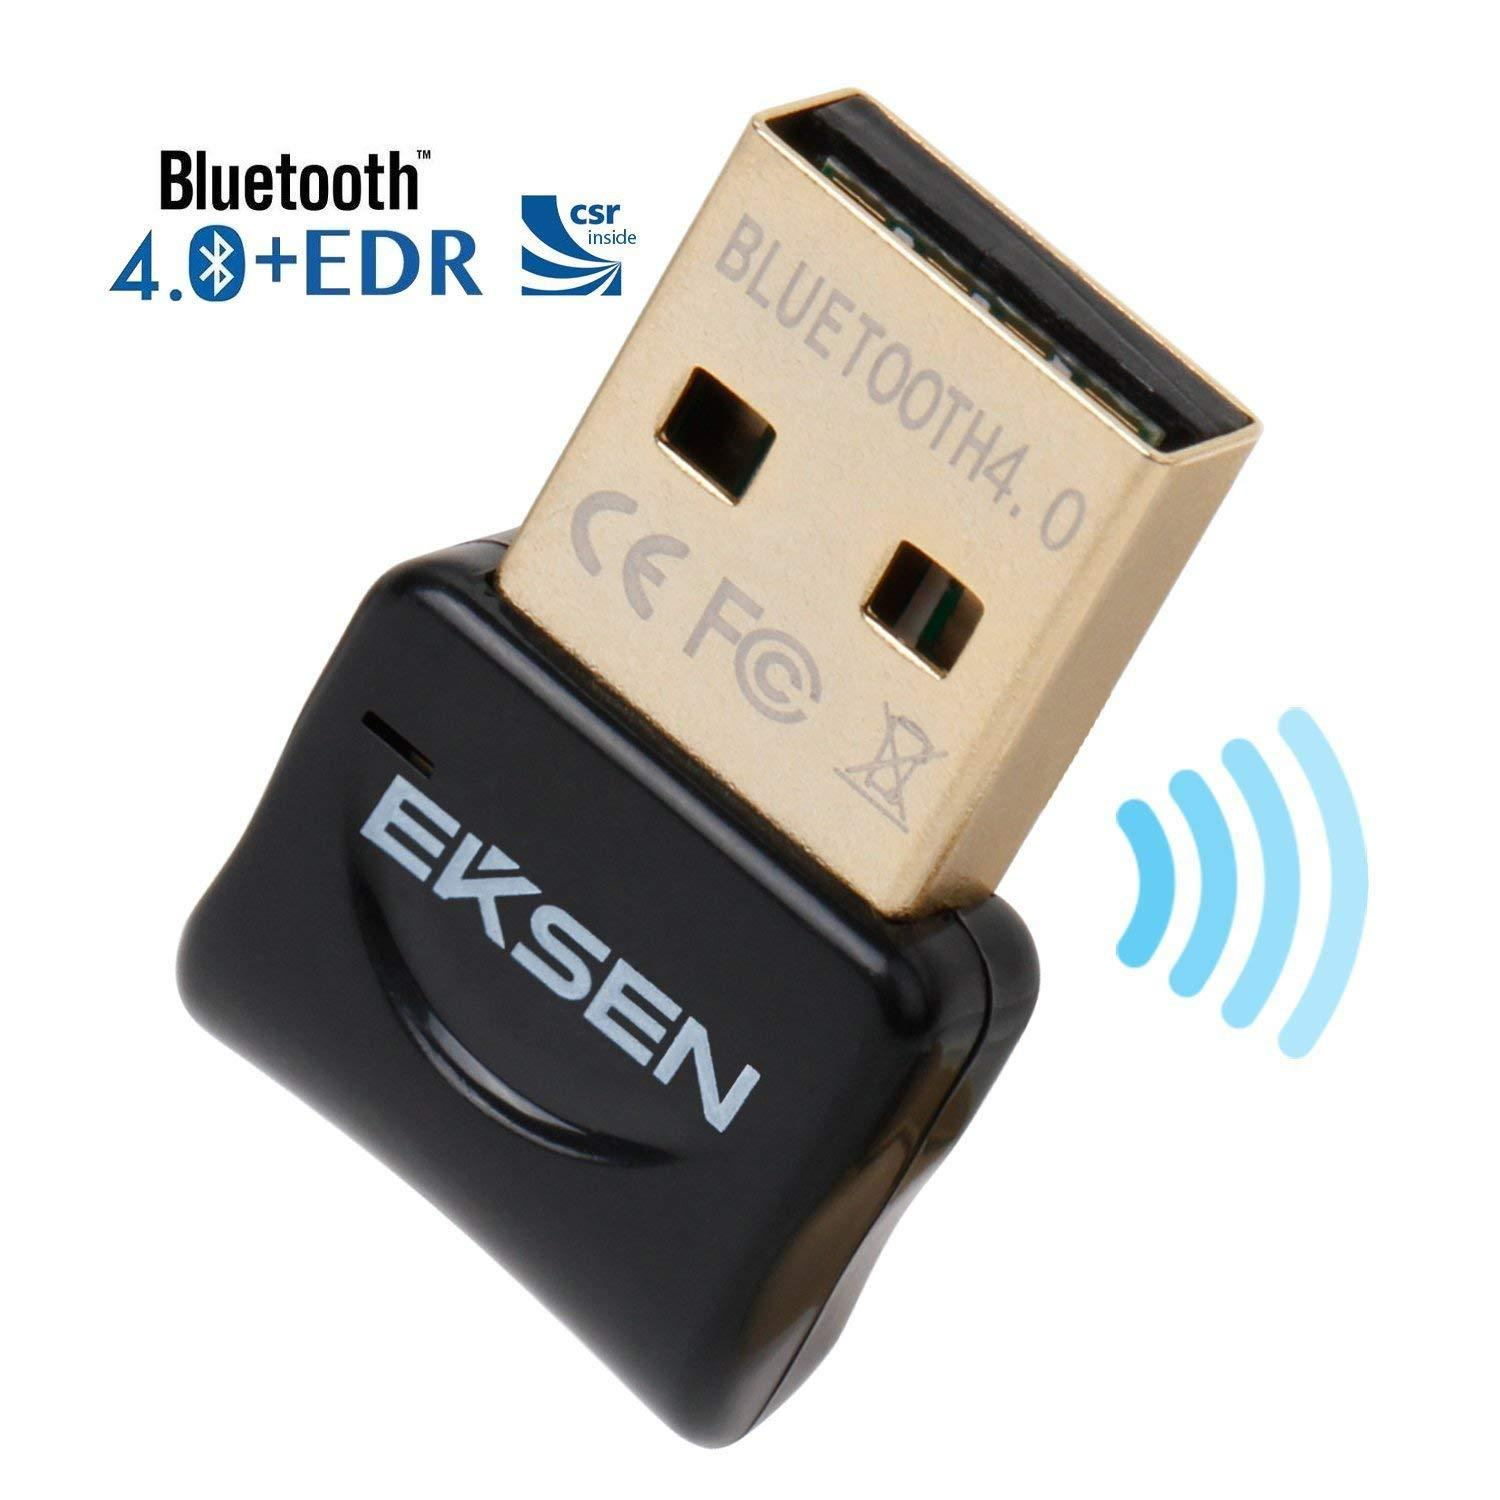 Bluetooth USB Dongle Adapter, EKSEN Bluetooth Transmitter and Receiver for  Windows 10 /8 / 7 / Vista - Plug and Play on Win 8 and Above